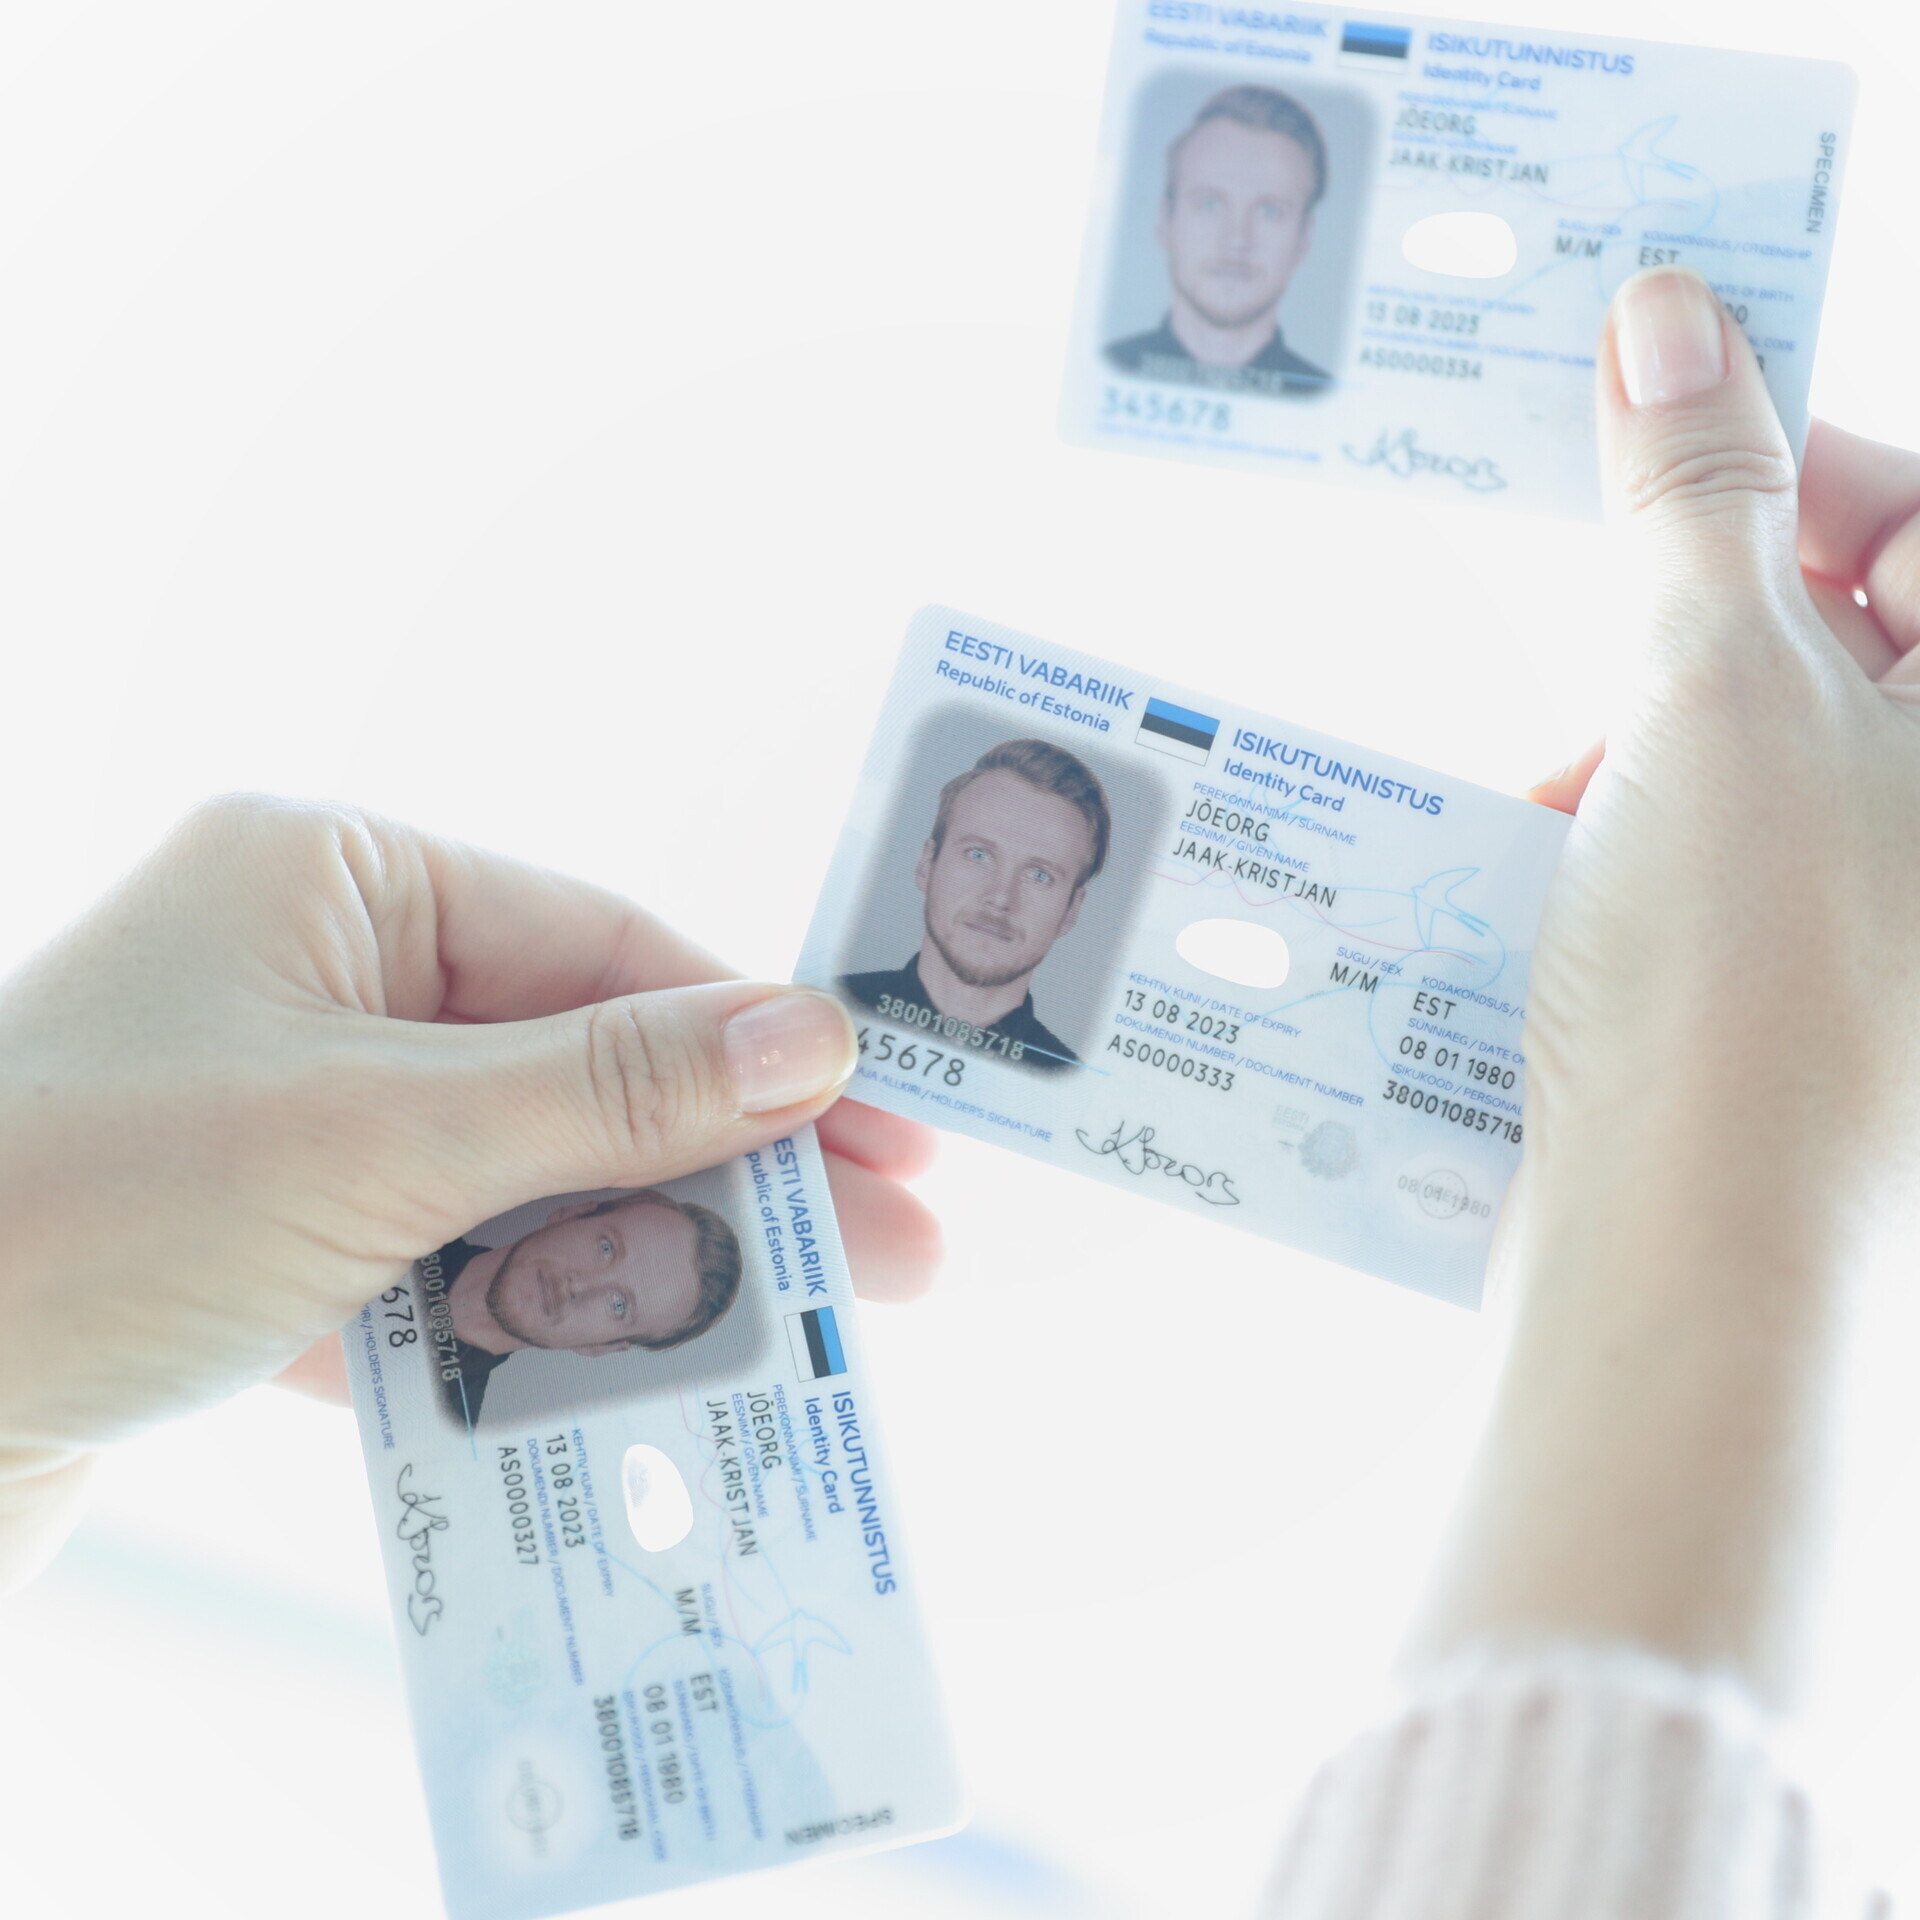 Estonia's first new ID cards to be issued this week | News | ERR